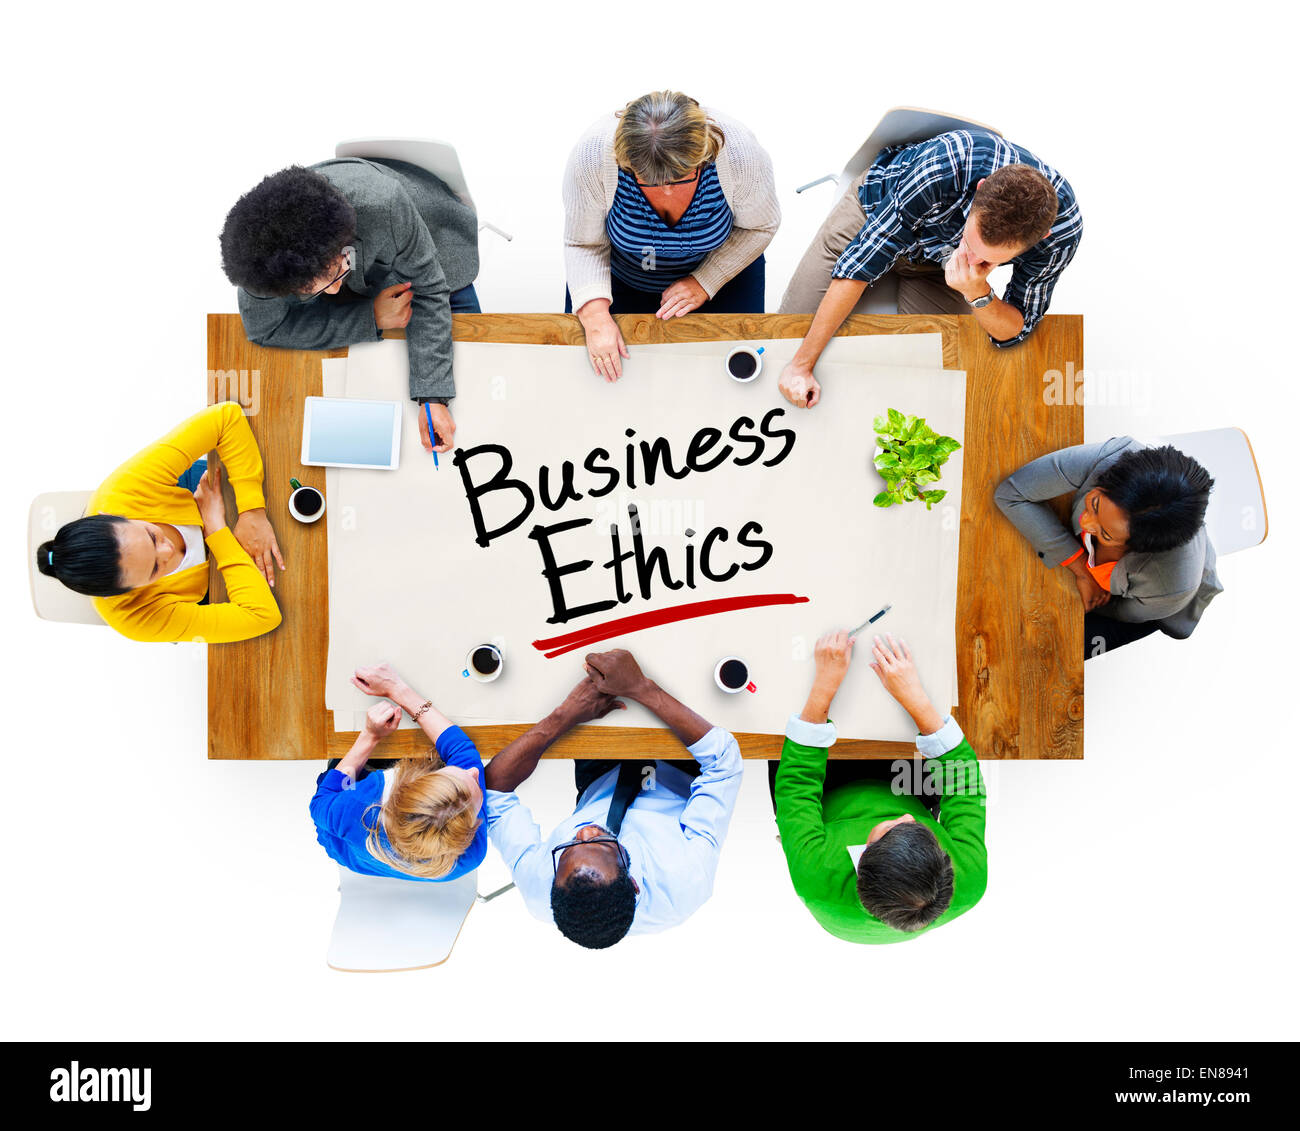 Multiethnic Group of People Discussing About Business Ethics - Stock Image